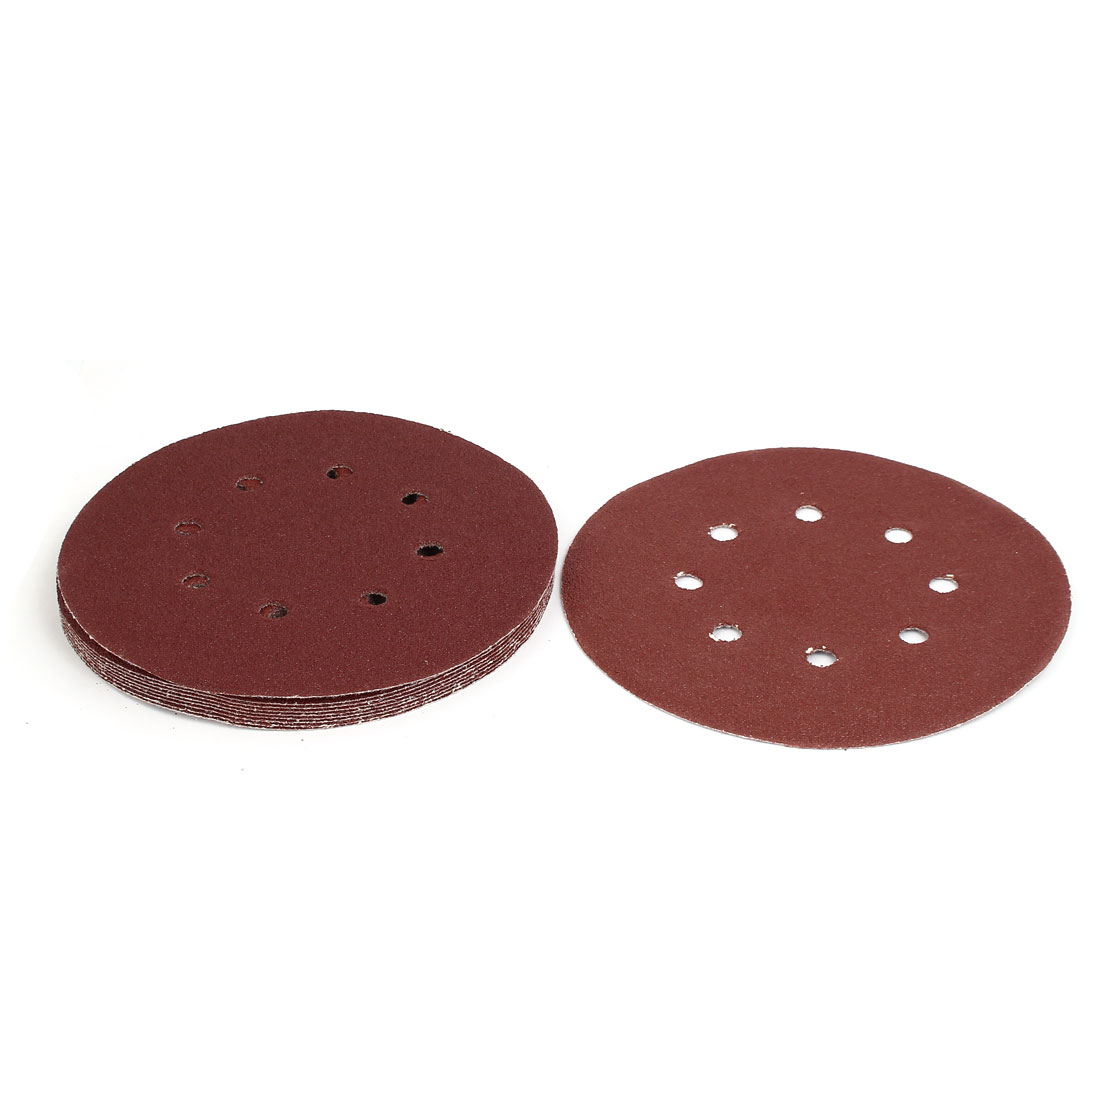 "60 Grit 8 Hole 7"" Diameter Sandpaper Hook Loop Sanding Disc 10 Pcs"